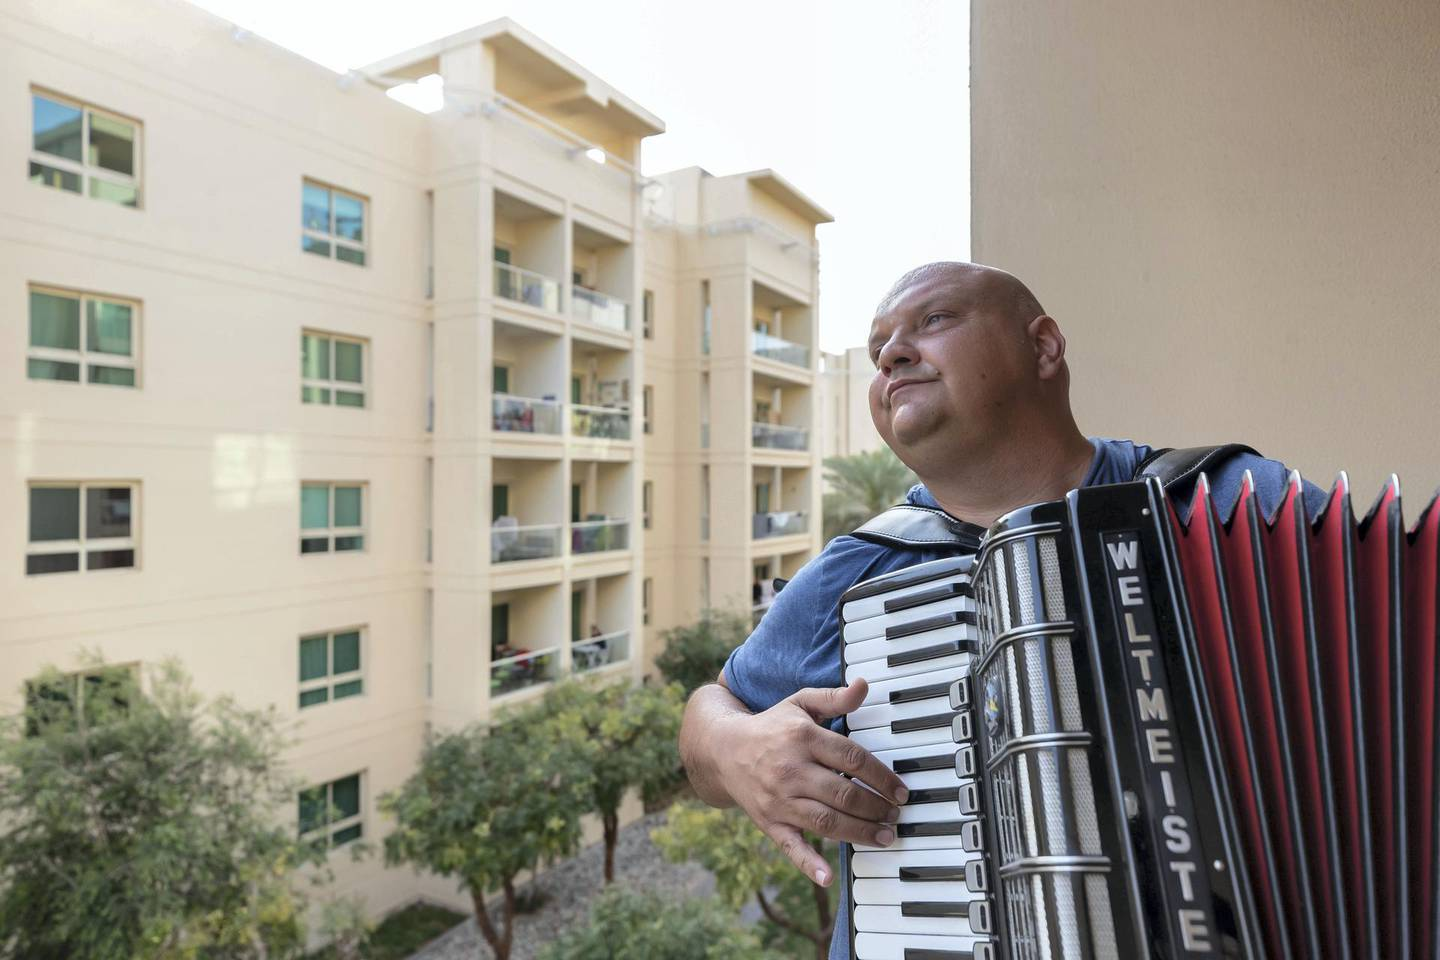 Dubai, United Arab Emirates - Reporter: Rory Reynolds: Boki Prekovic, a Serbian accordion player keeping residents stuck at home entertained from his balcony. Thursday, March 19th, 2020. The Greens, Dubai. Chris Whiteoak / The National